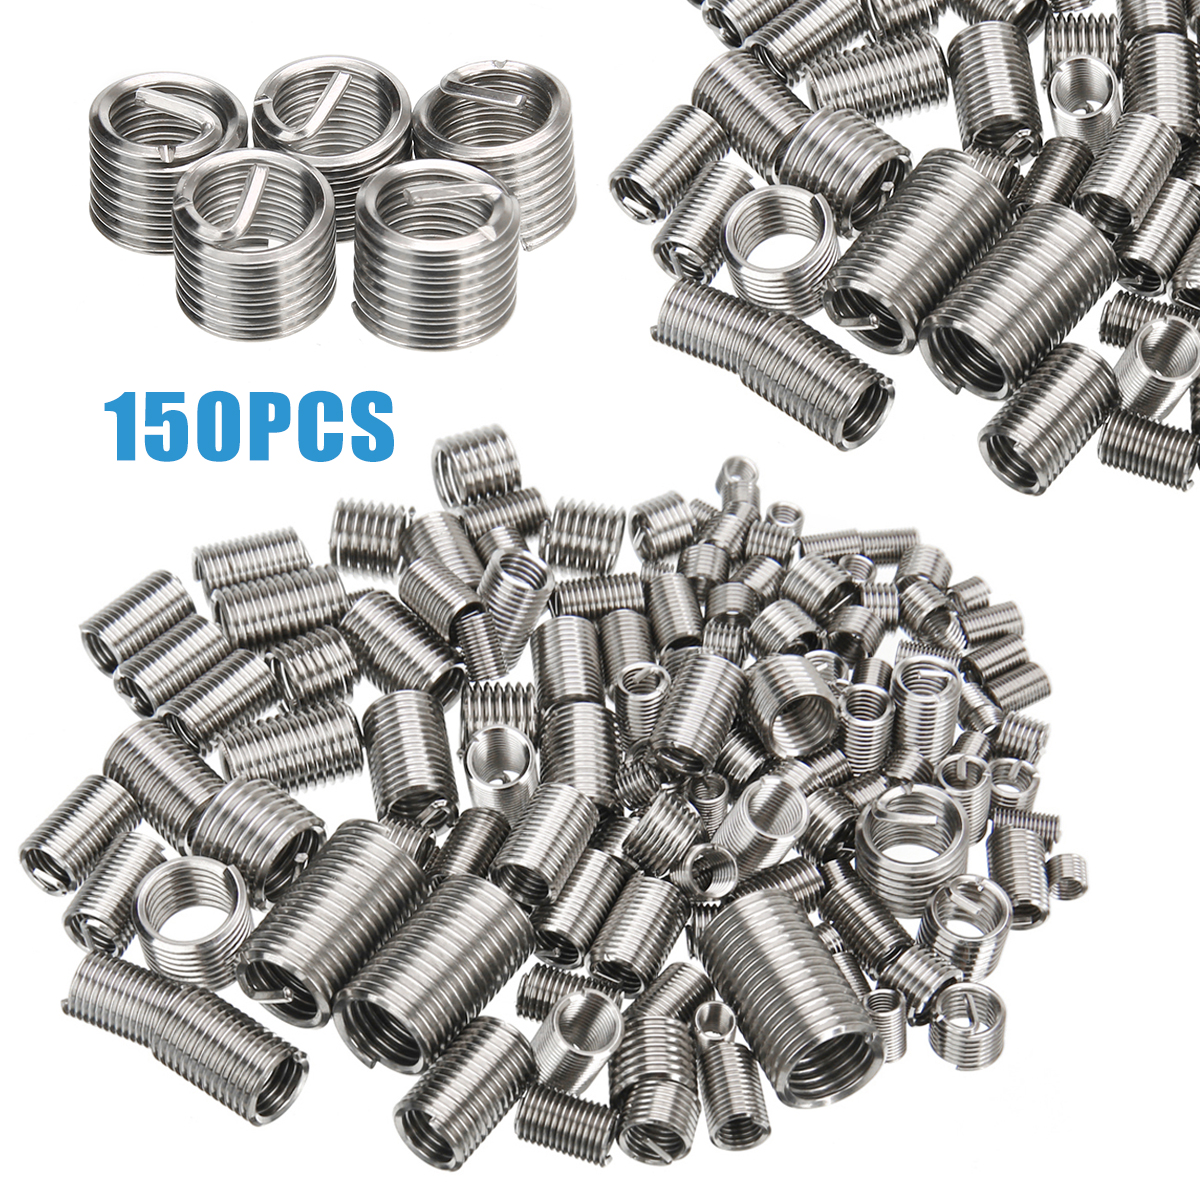 150pcs Stainless Steel Helicoil Thread Repair Insert Kit M3 M4 M5 M6 M8 Rivet Nut Kit Crew Sleeve Set